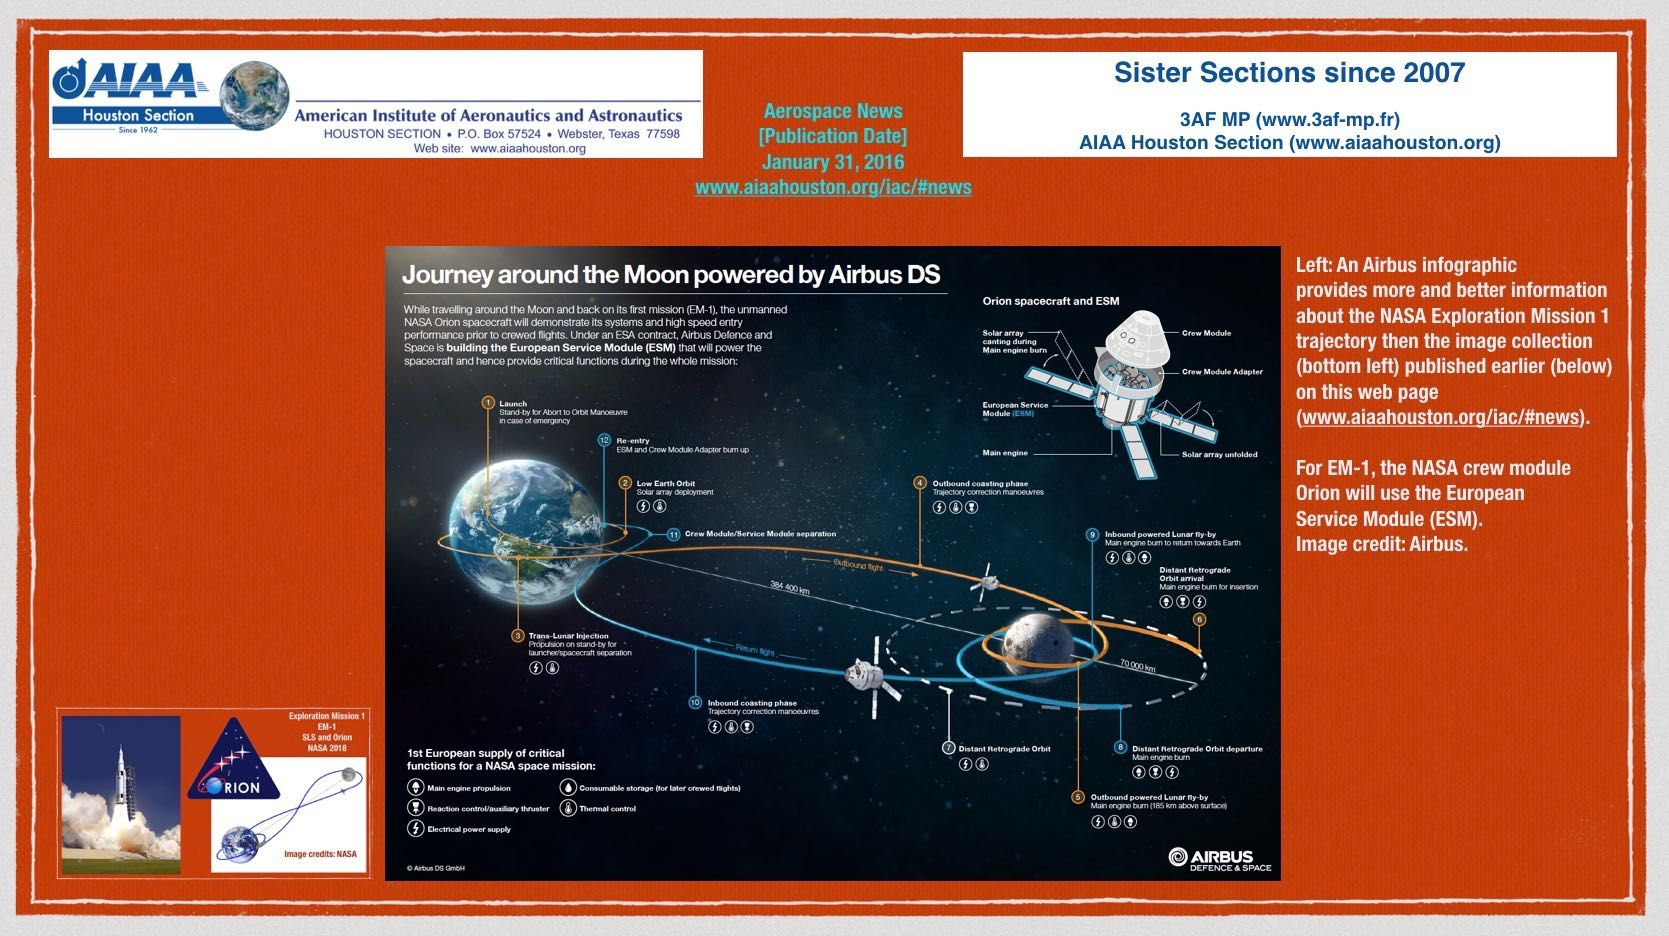 Above: (Click to zoom.) Image credit: Airbus infographic, November 2015.